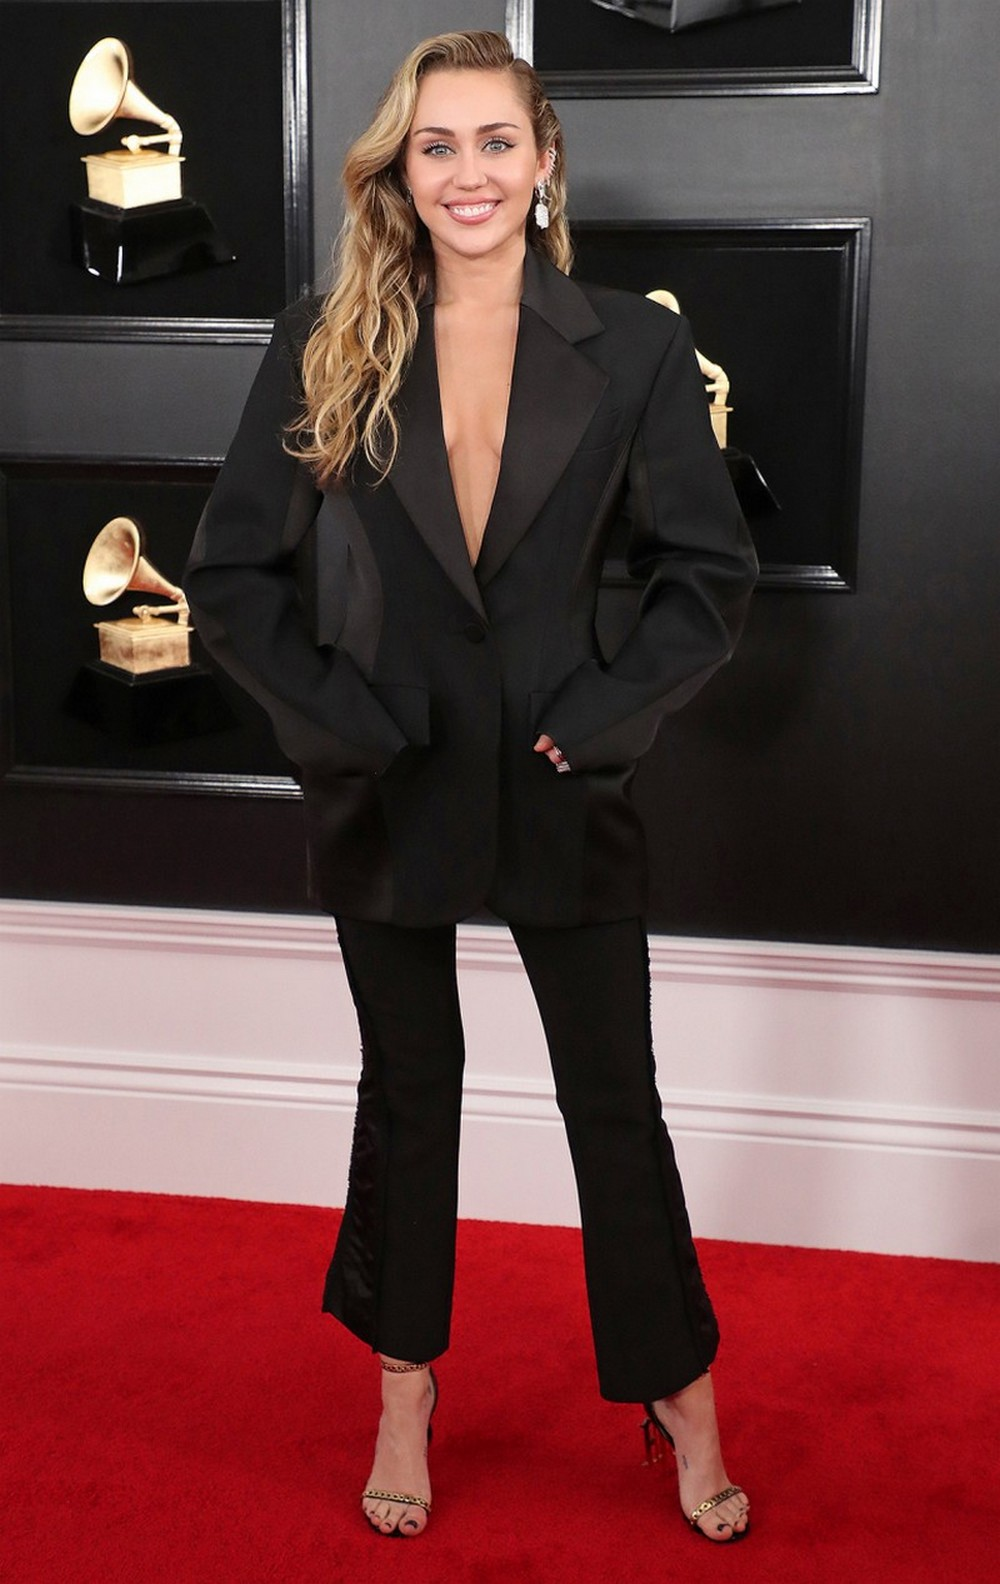 CovetED Reveals The Best High-Fashion Looks Of The 2019 Grammys 2019 grammys CovetED Reveals The Best High-Fashion Looks Of The 2019 Grammys CovetED Reveals The Best High Fashion Looks Of The 2019 Grammys 3